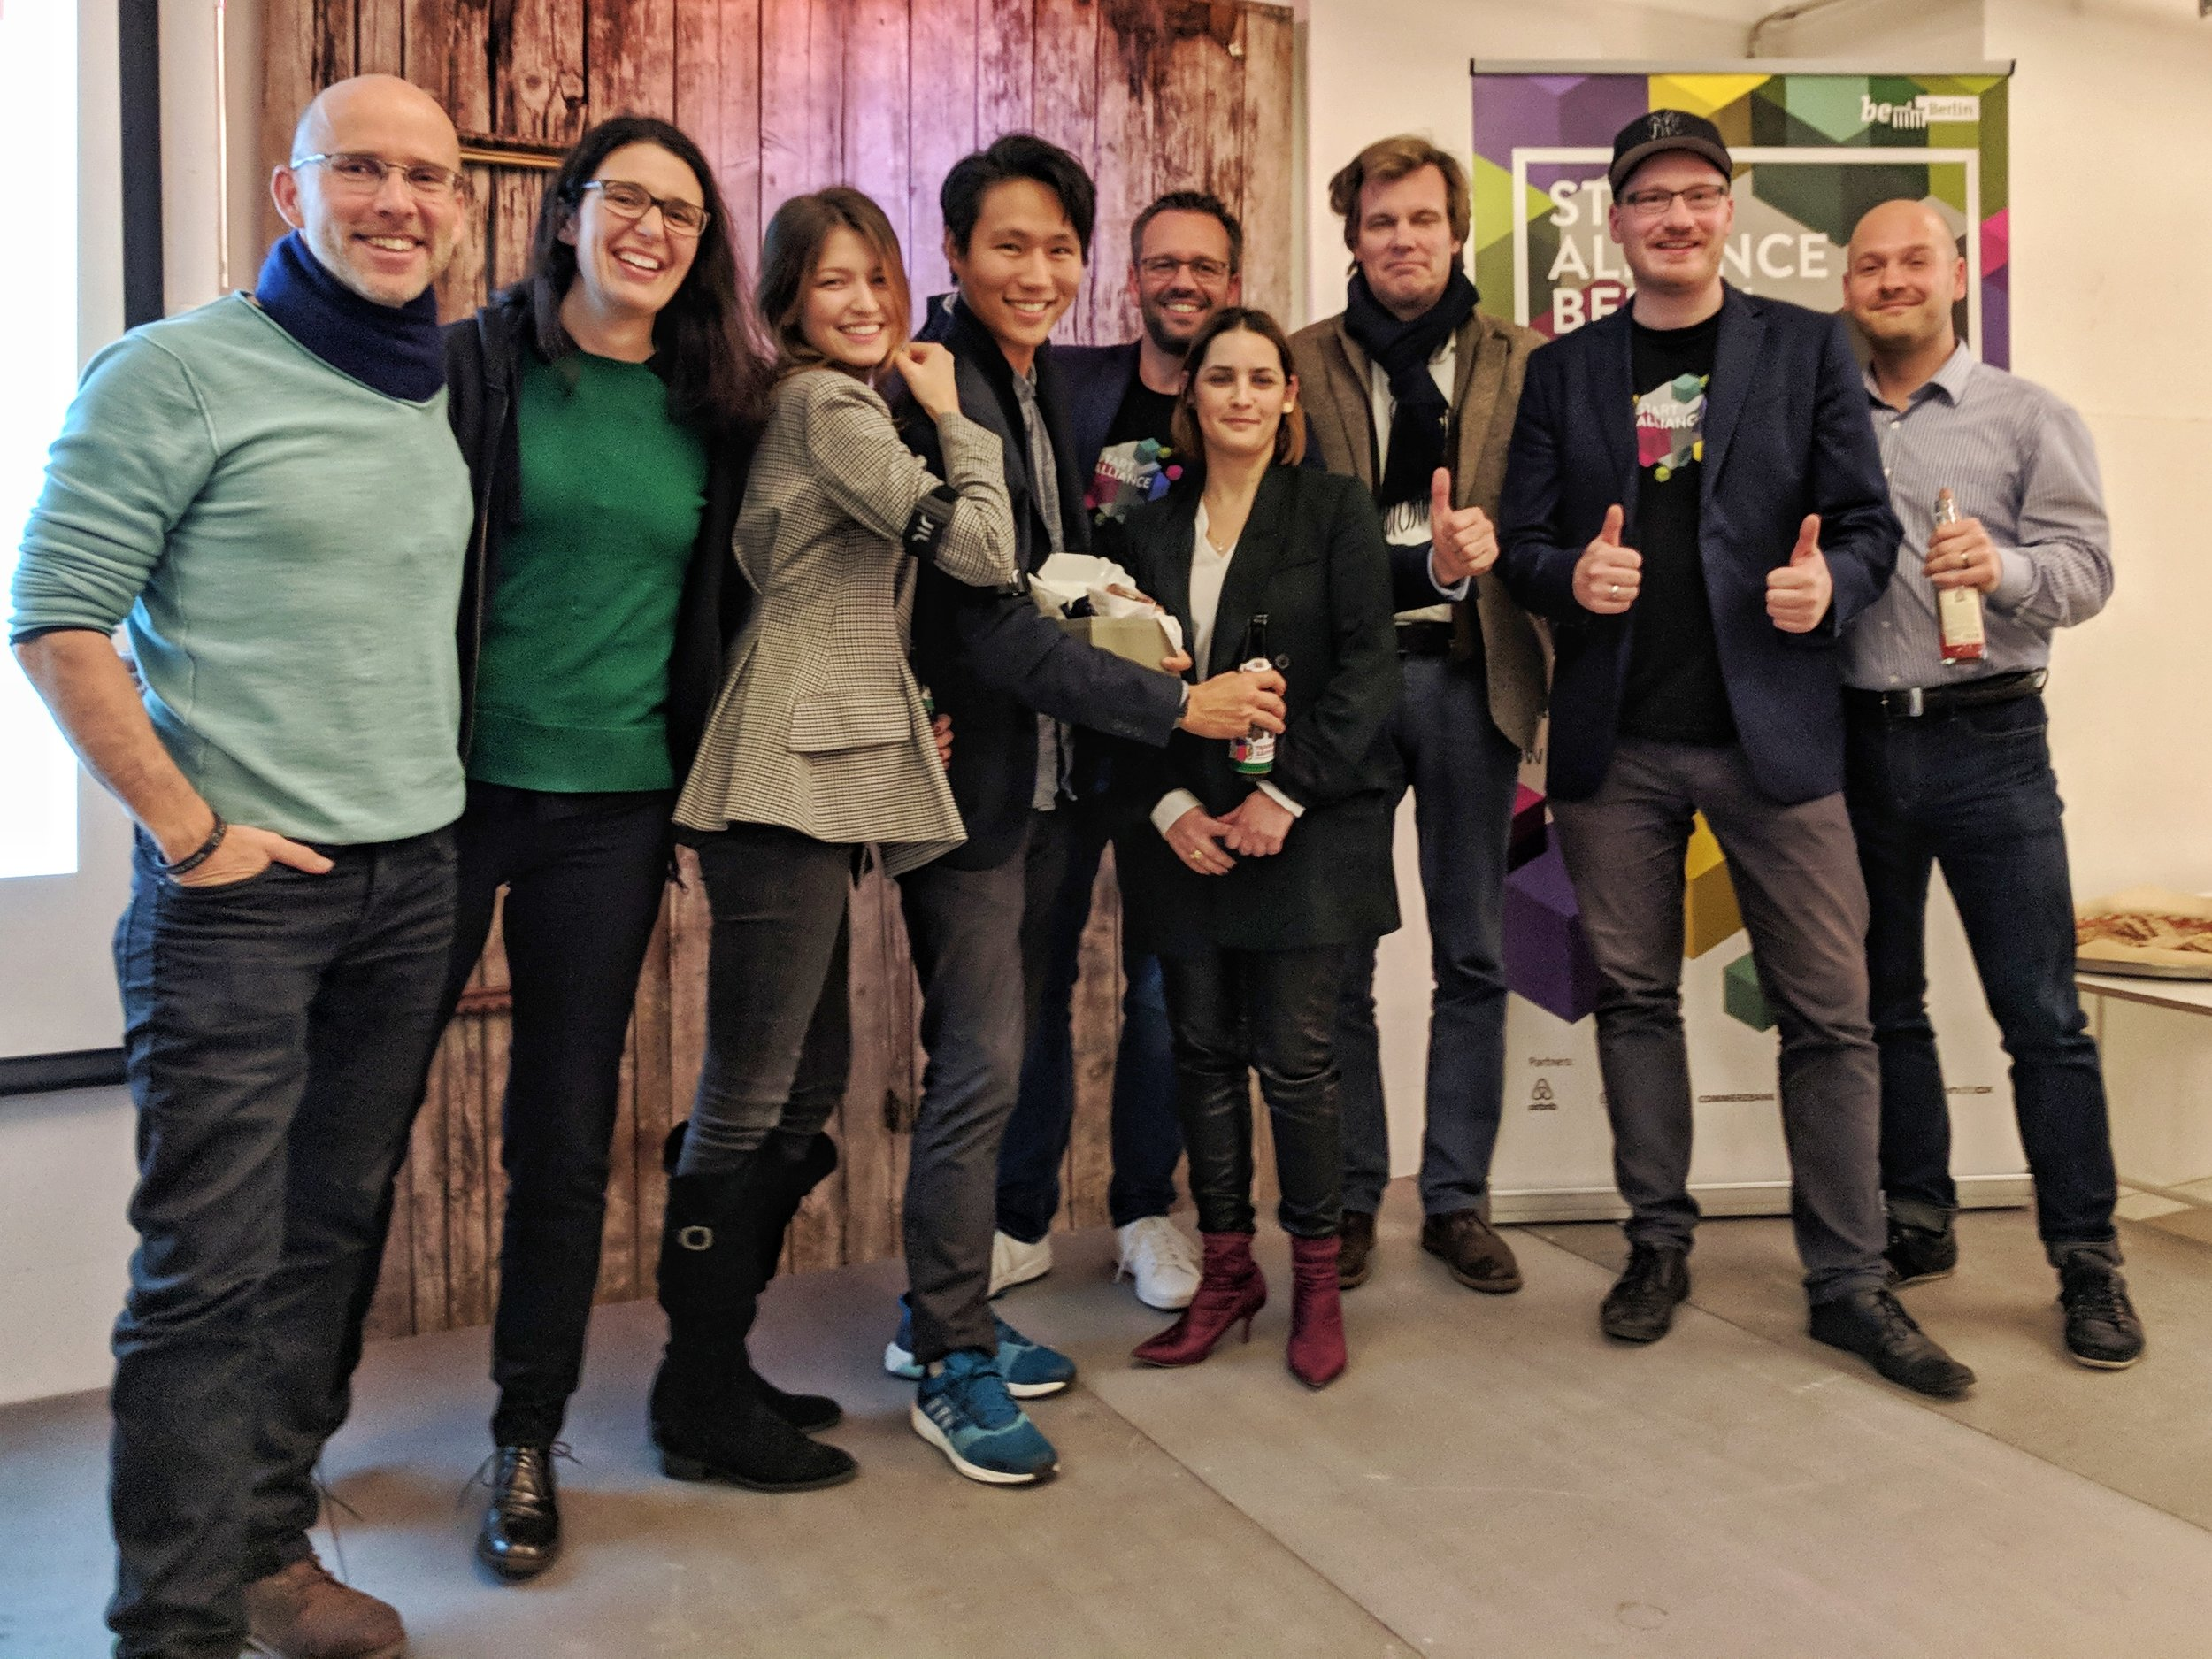 Pitch Winner with Jury fltr: Alex Piutti (HTGF), Isabell Canu (Coparion), Ruby Hawliczek (Wear Works), Kevin Yoo (Wear Works), Christian Herzog (Start Alliance), Mali Baum (Angel Investor), Philipp Semmer (MOTU Ventures), Carl-Philipp Wackernagel (Sstart Alliance), Rayk Reitenbach (IBB Bet)